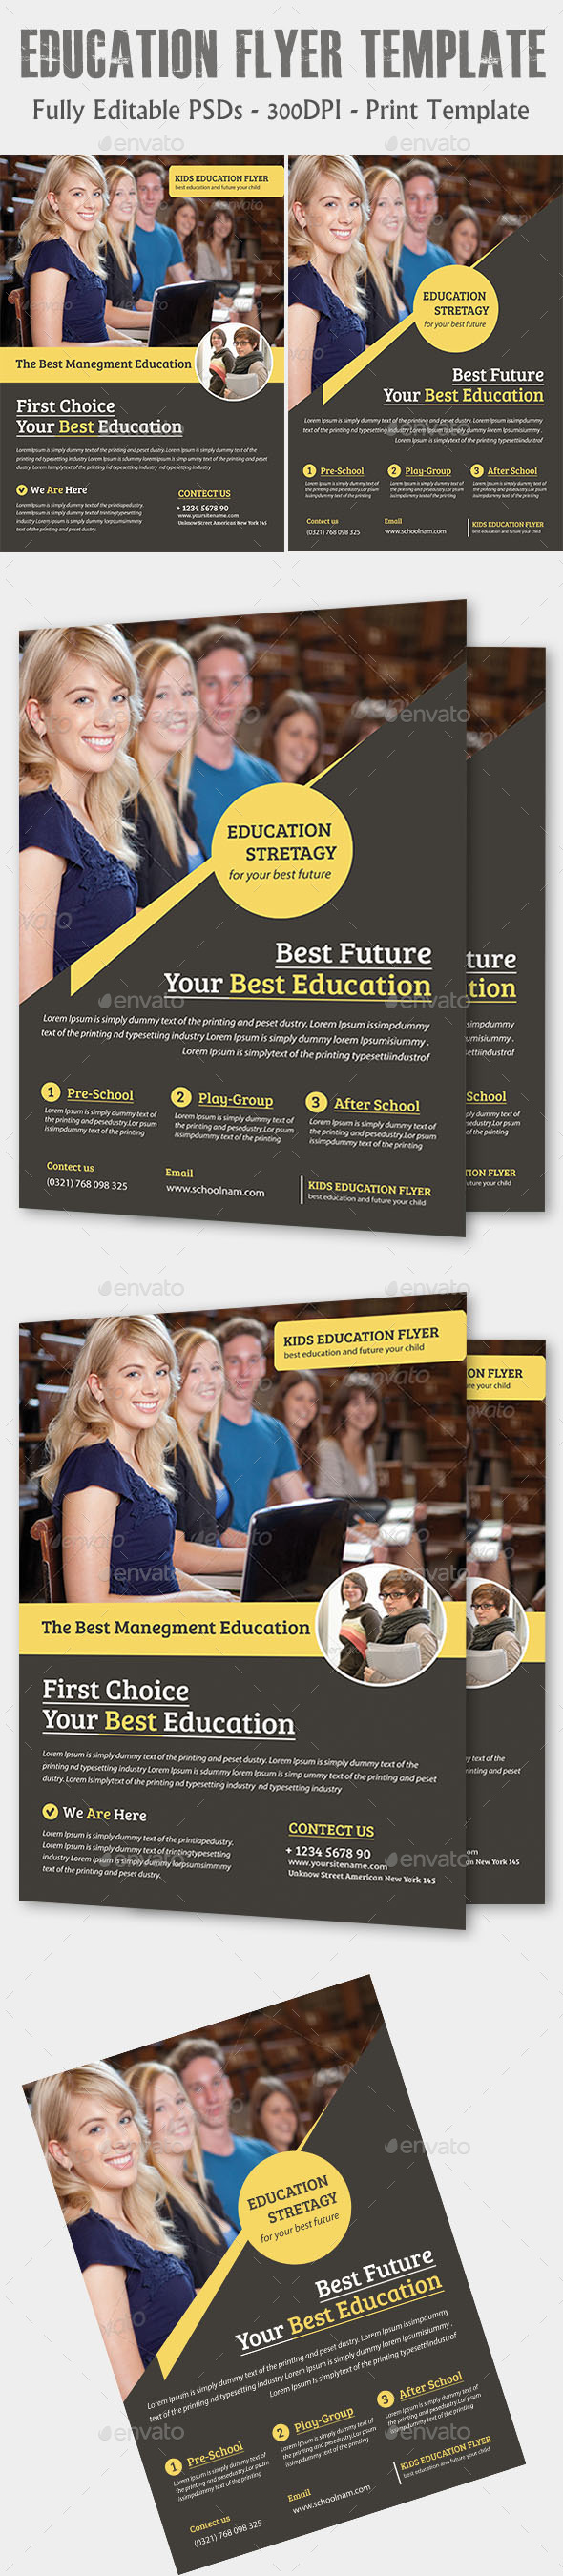 GraphicRiver Education Flyer Temp 11877436